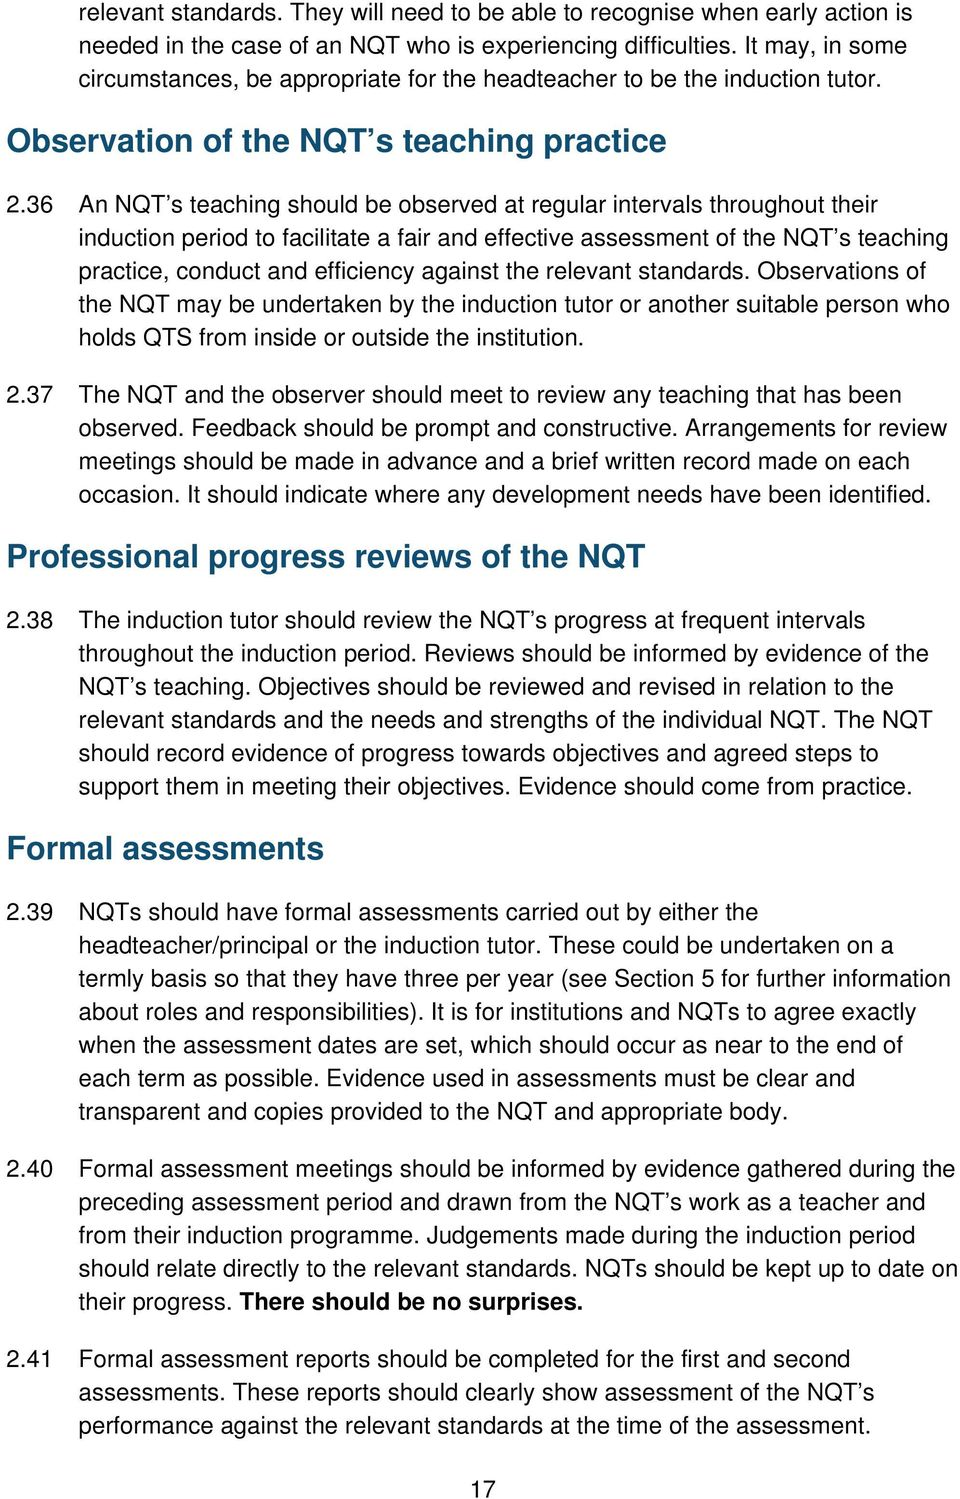 36 An NQT s teaching should be observed at regular intervals throughout their induction period to facilitate a fair and effective assessment of the NQT s teaching practice, conduct and efficiency